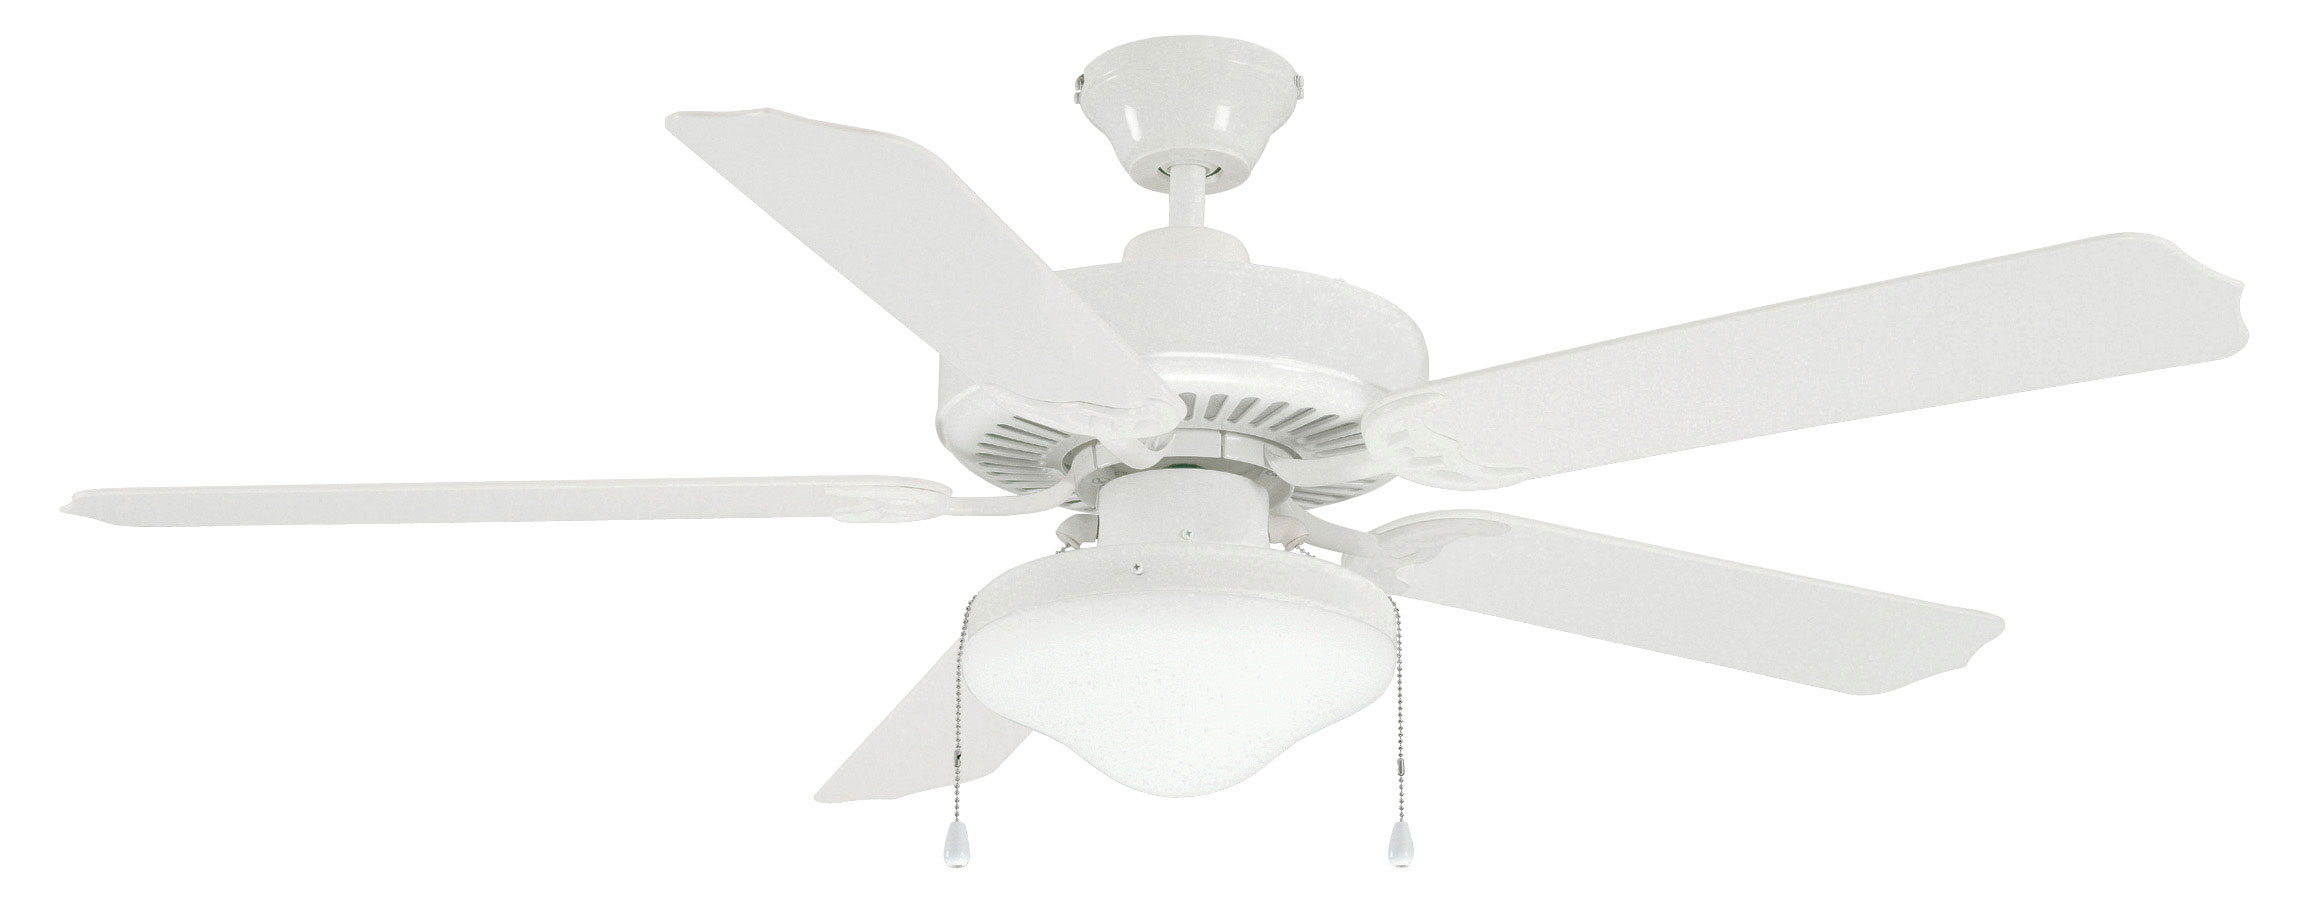 home ceilings detail white ceiling fan with in lights bay furniture garden art ii windward hampton fans decor